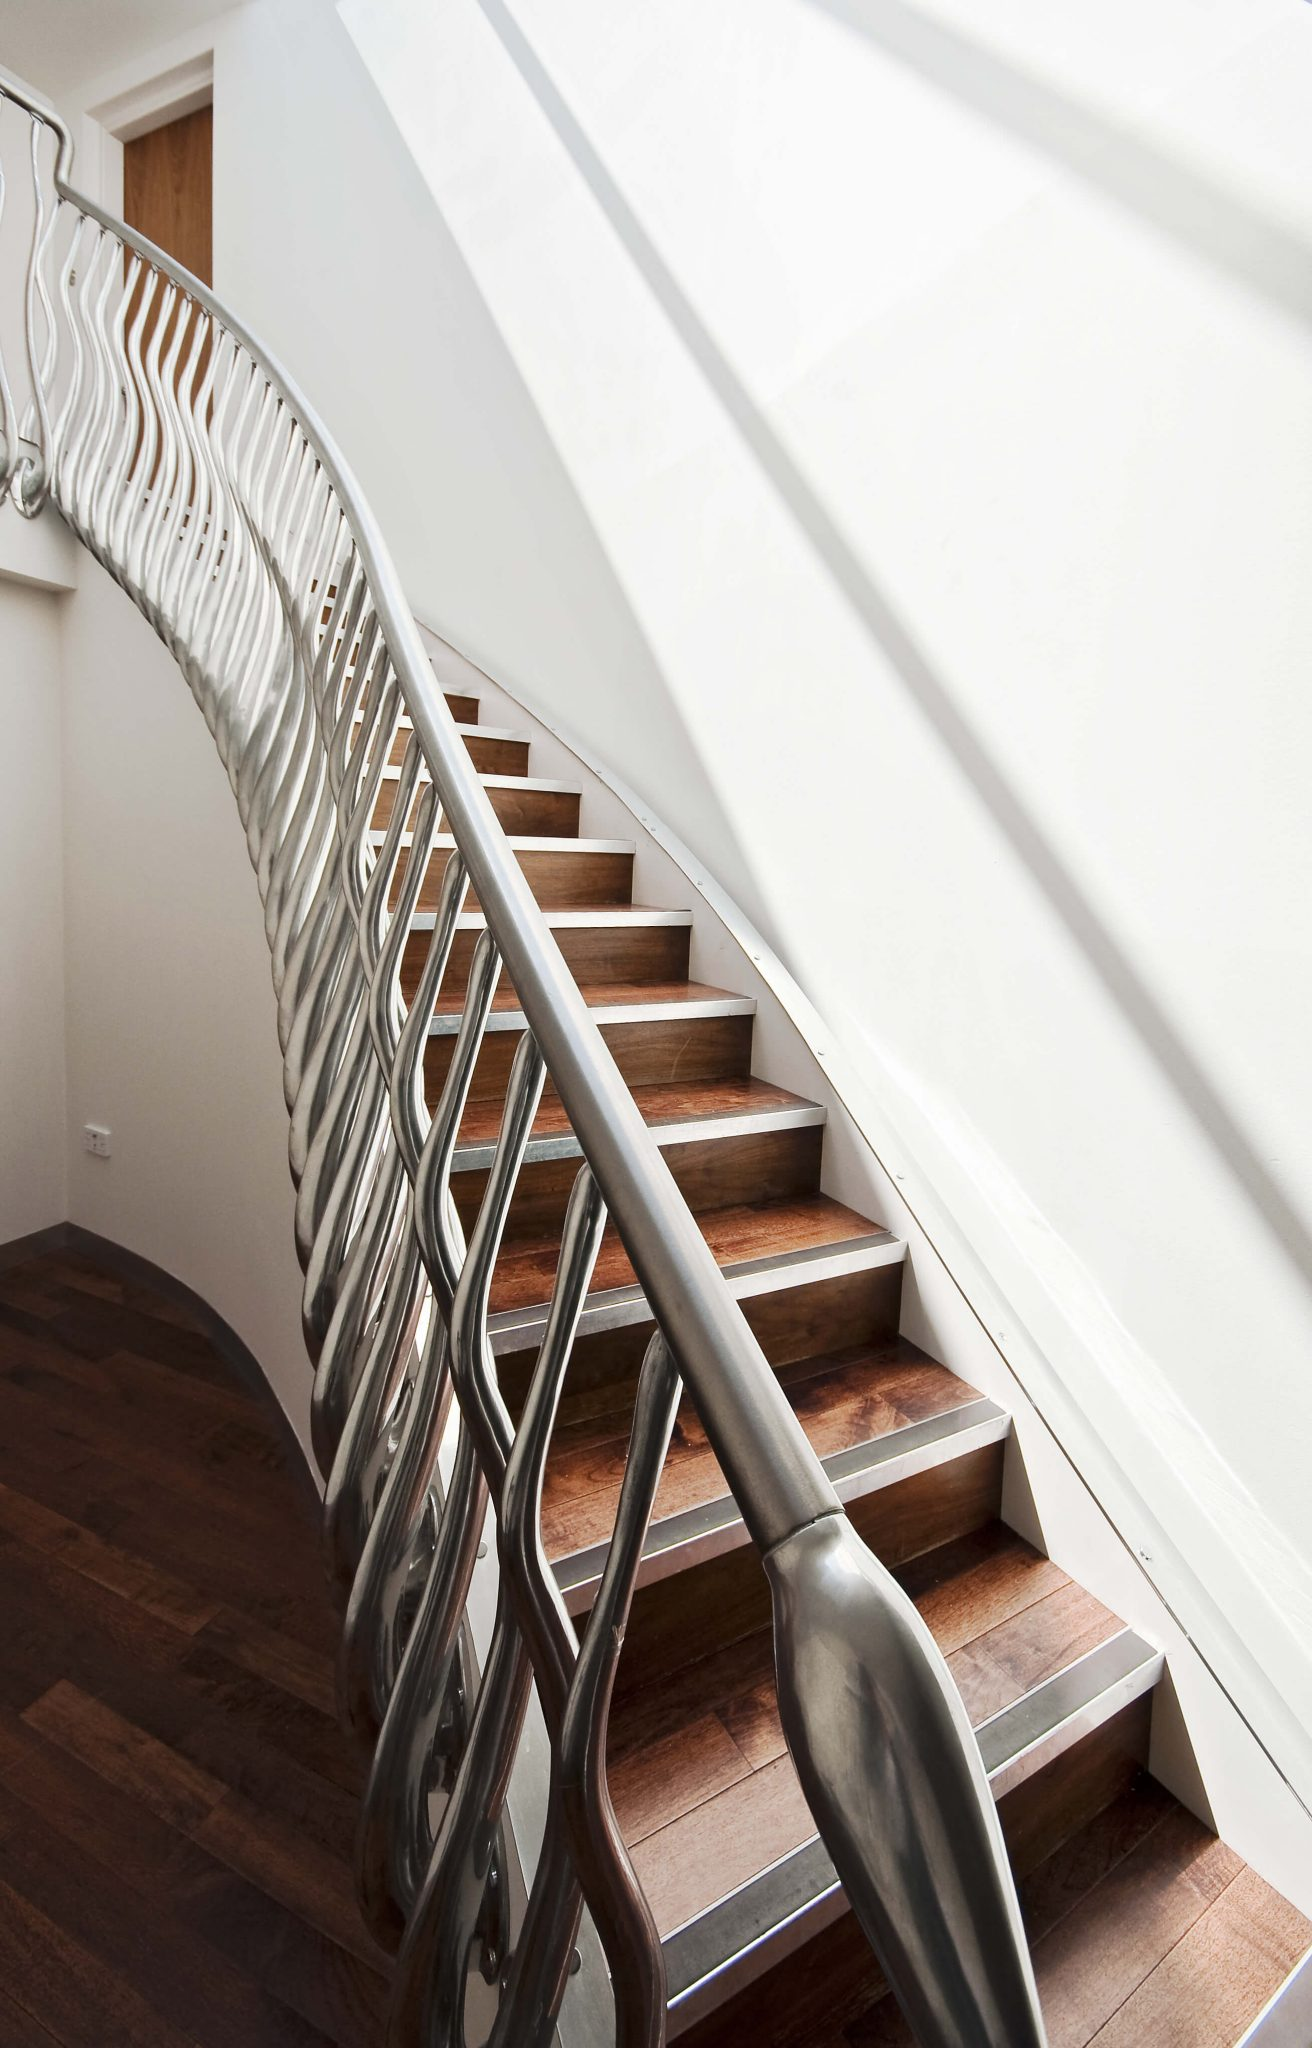 Wood steps encased in closed stringer.  The ornate metal handrail and baluster make this staircase stand out.